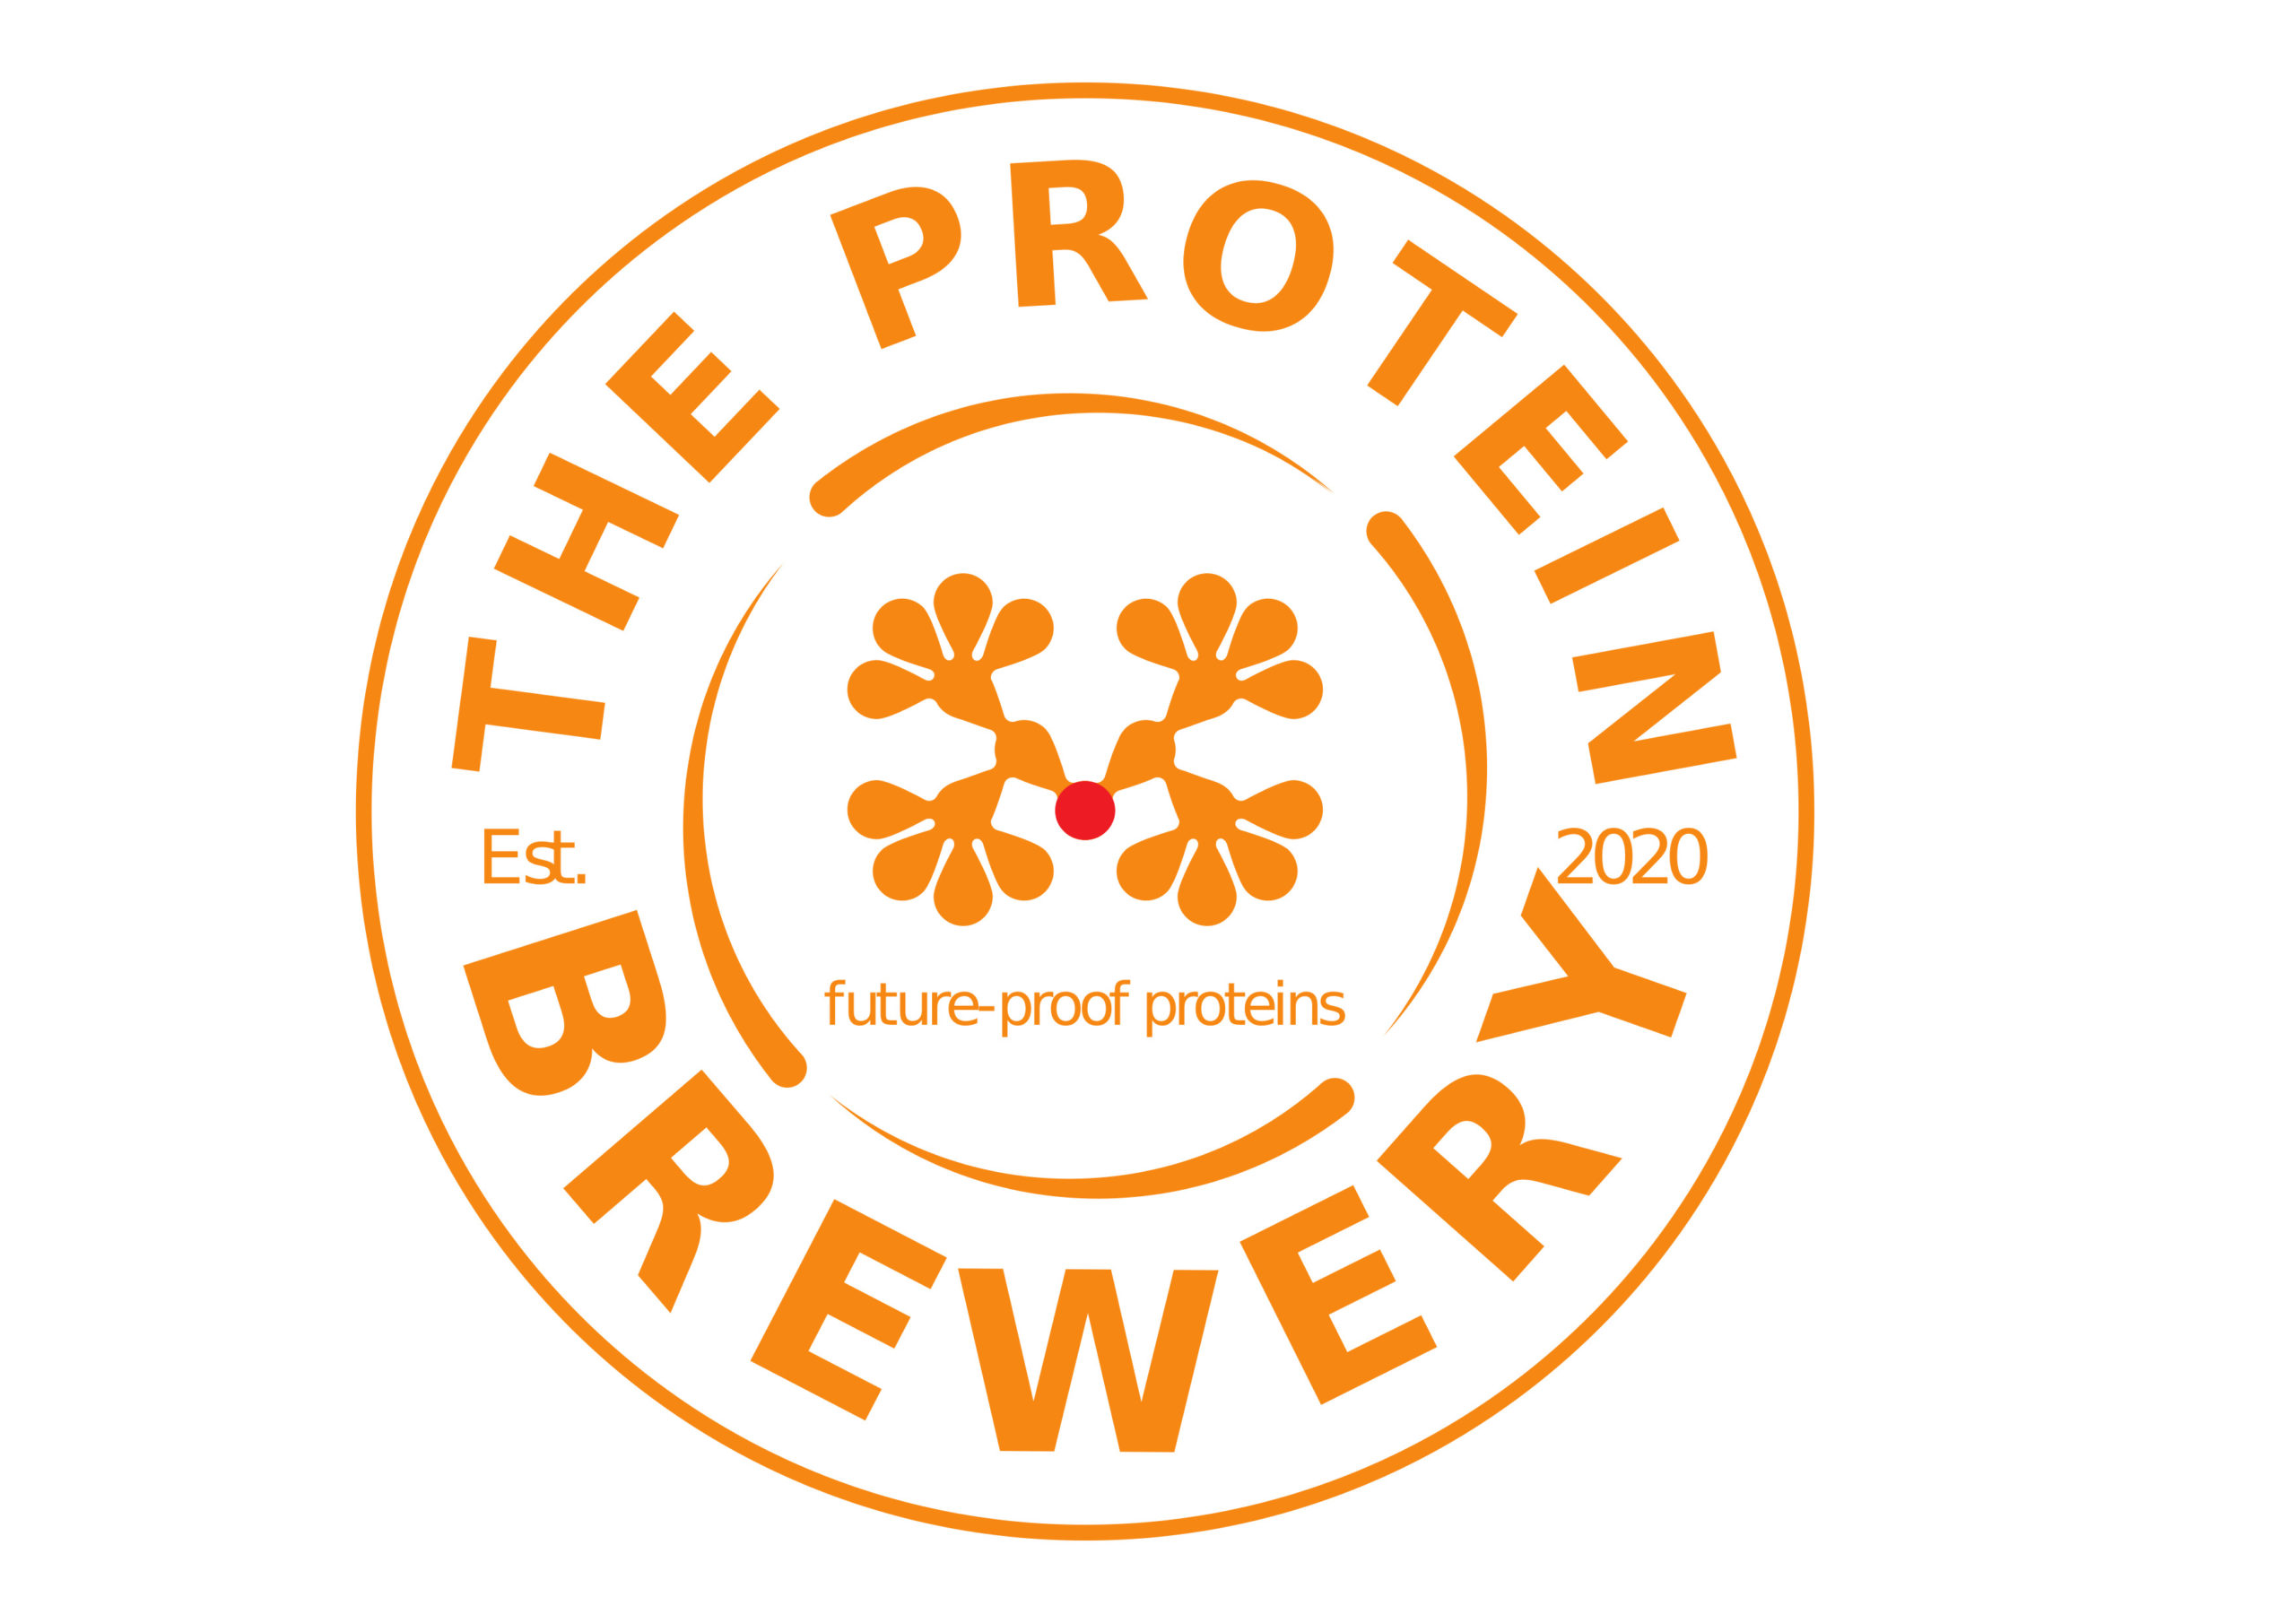 The Protein Brewery expands activities to North America